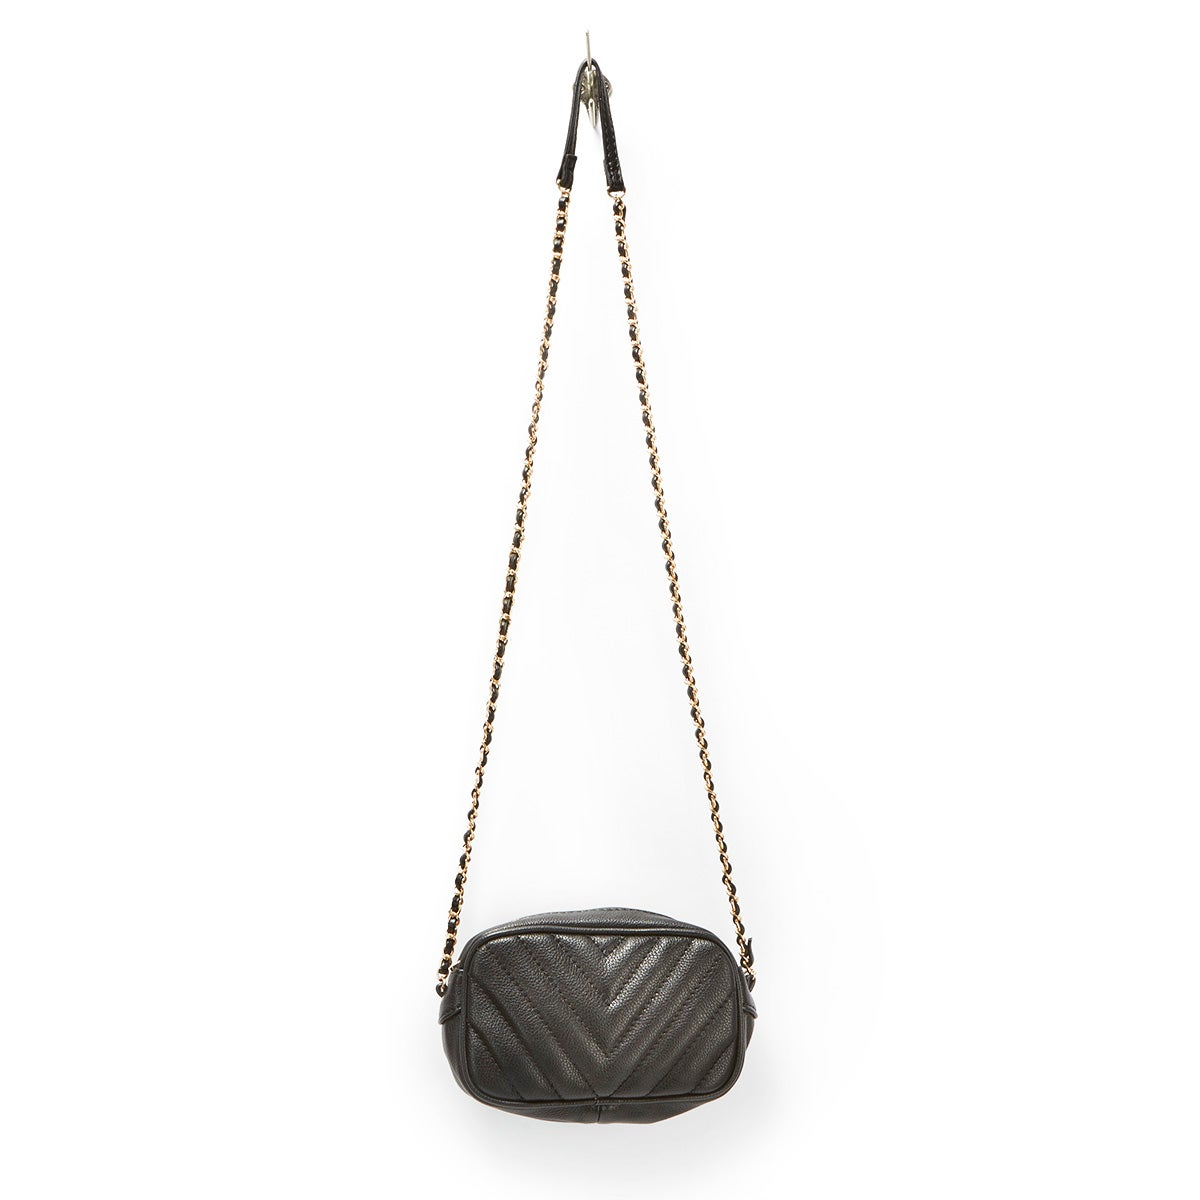 Lds black quilted mini cross body bag